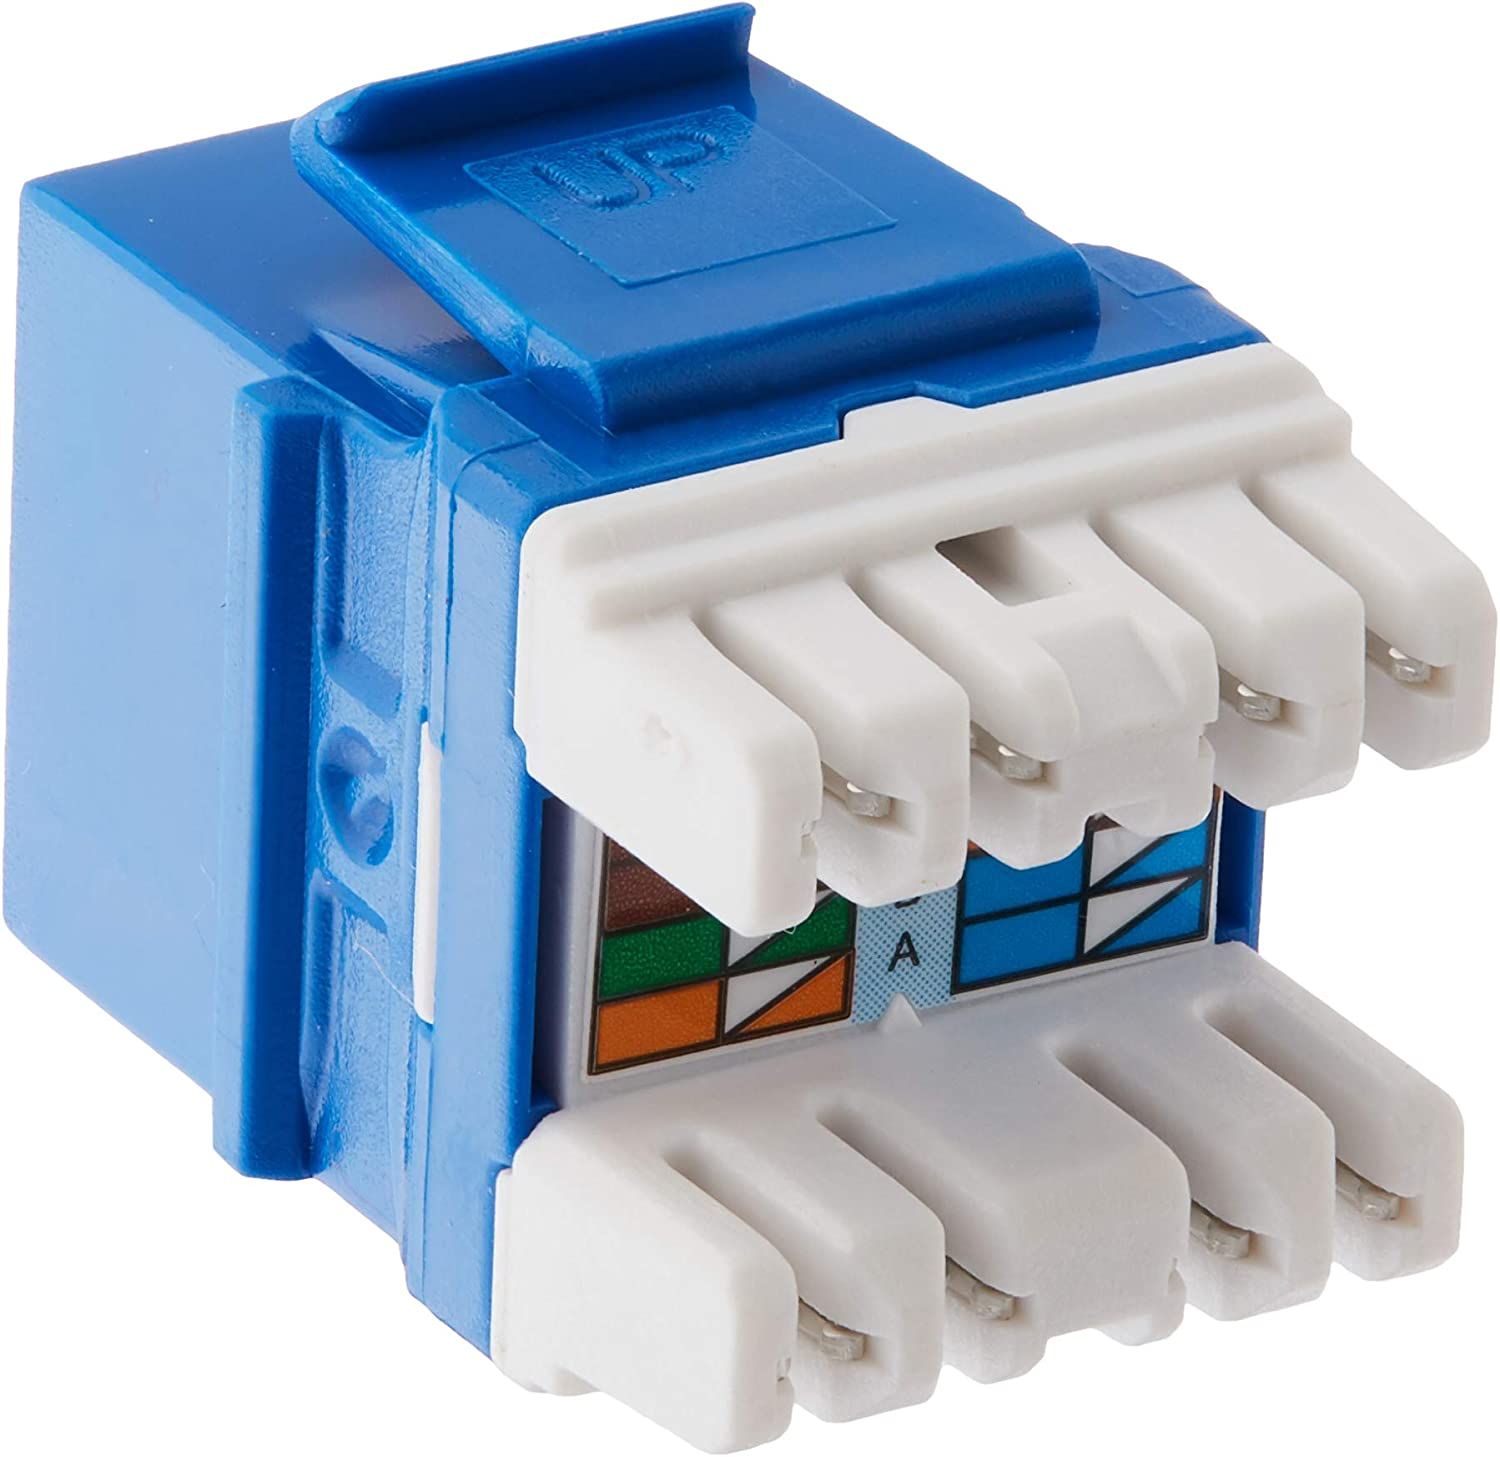 Legrand On-Q WP3475LA10 Contractor Quick Connect Cat5E RJ45 Keystone Connector Pack of 10 Light Almond